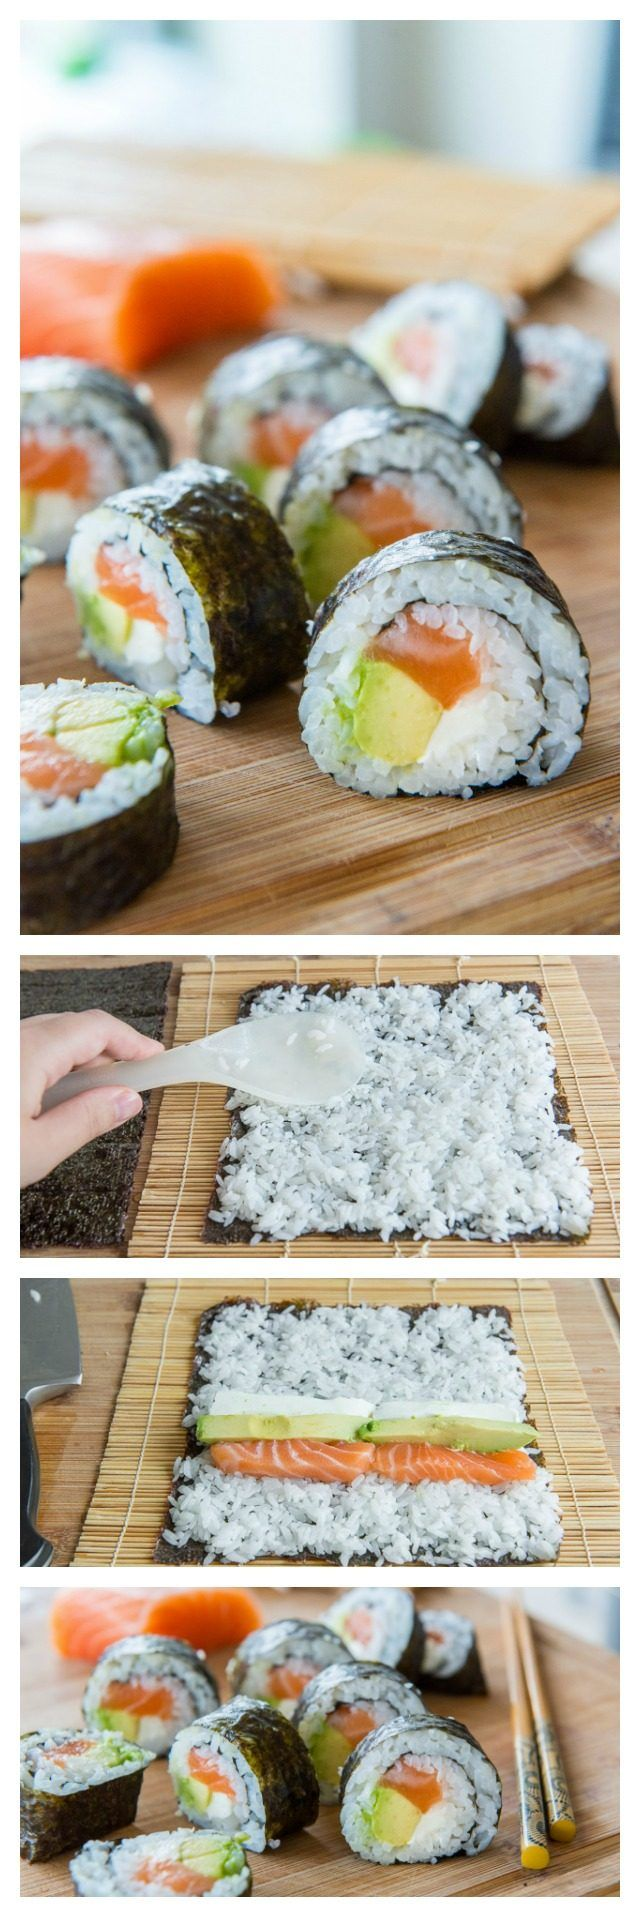 How to Make Homemade Sushi                                                                                                                                                                                 More